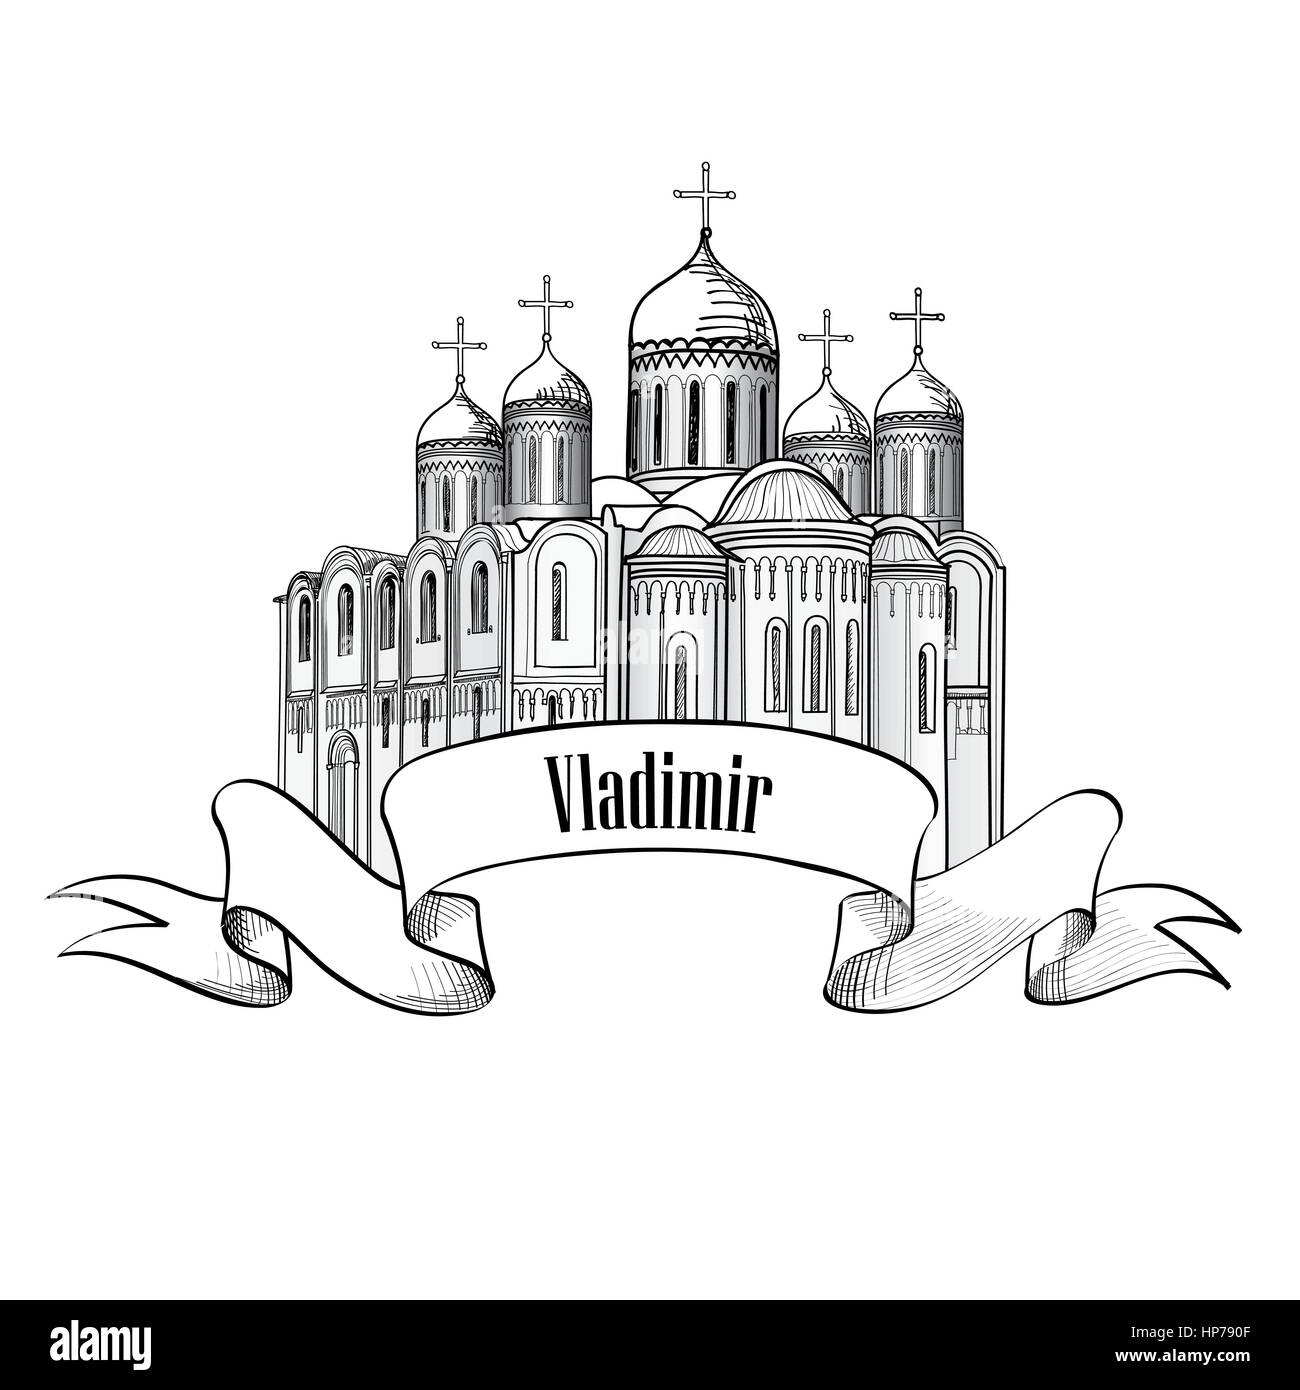 Dormition Cathedral in Vladimir city. Russian ancient city architectural landmark. Travel Russia engraving background. - Stock Image